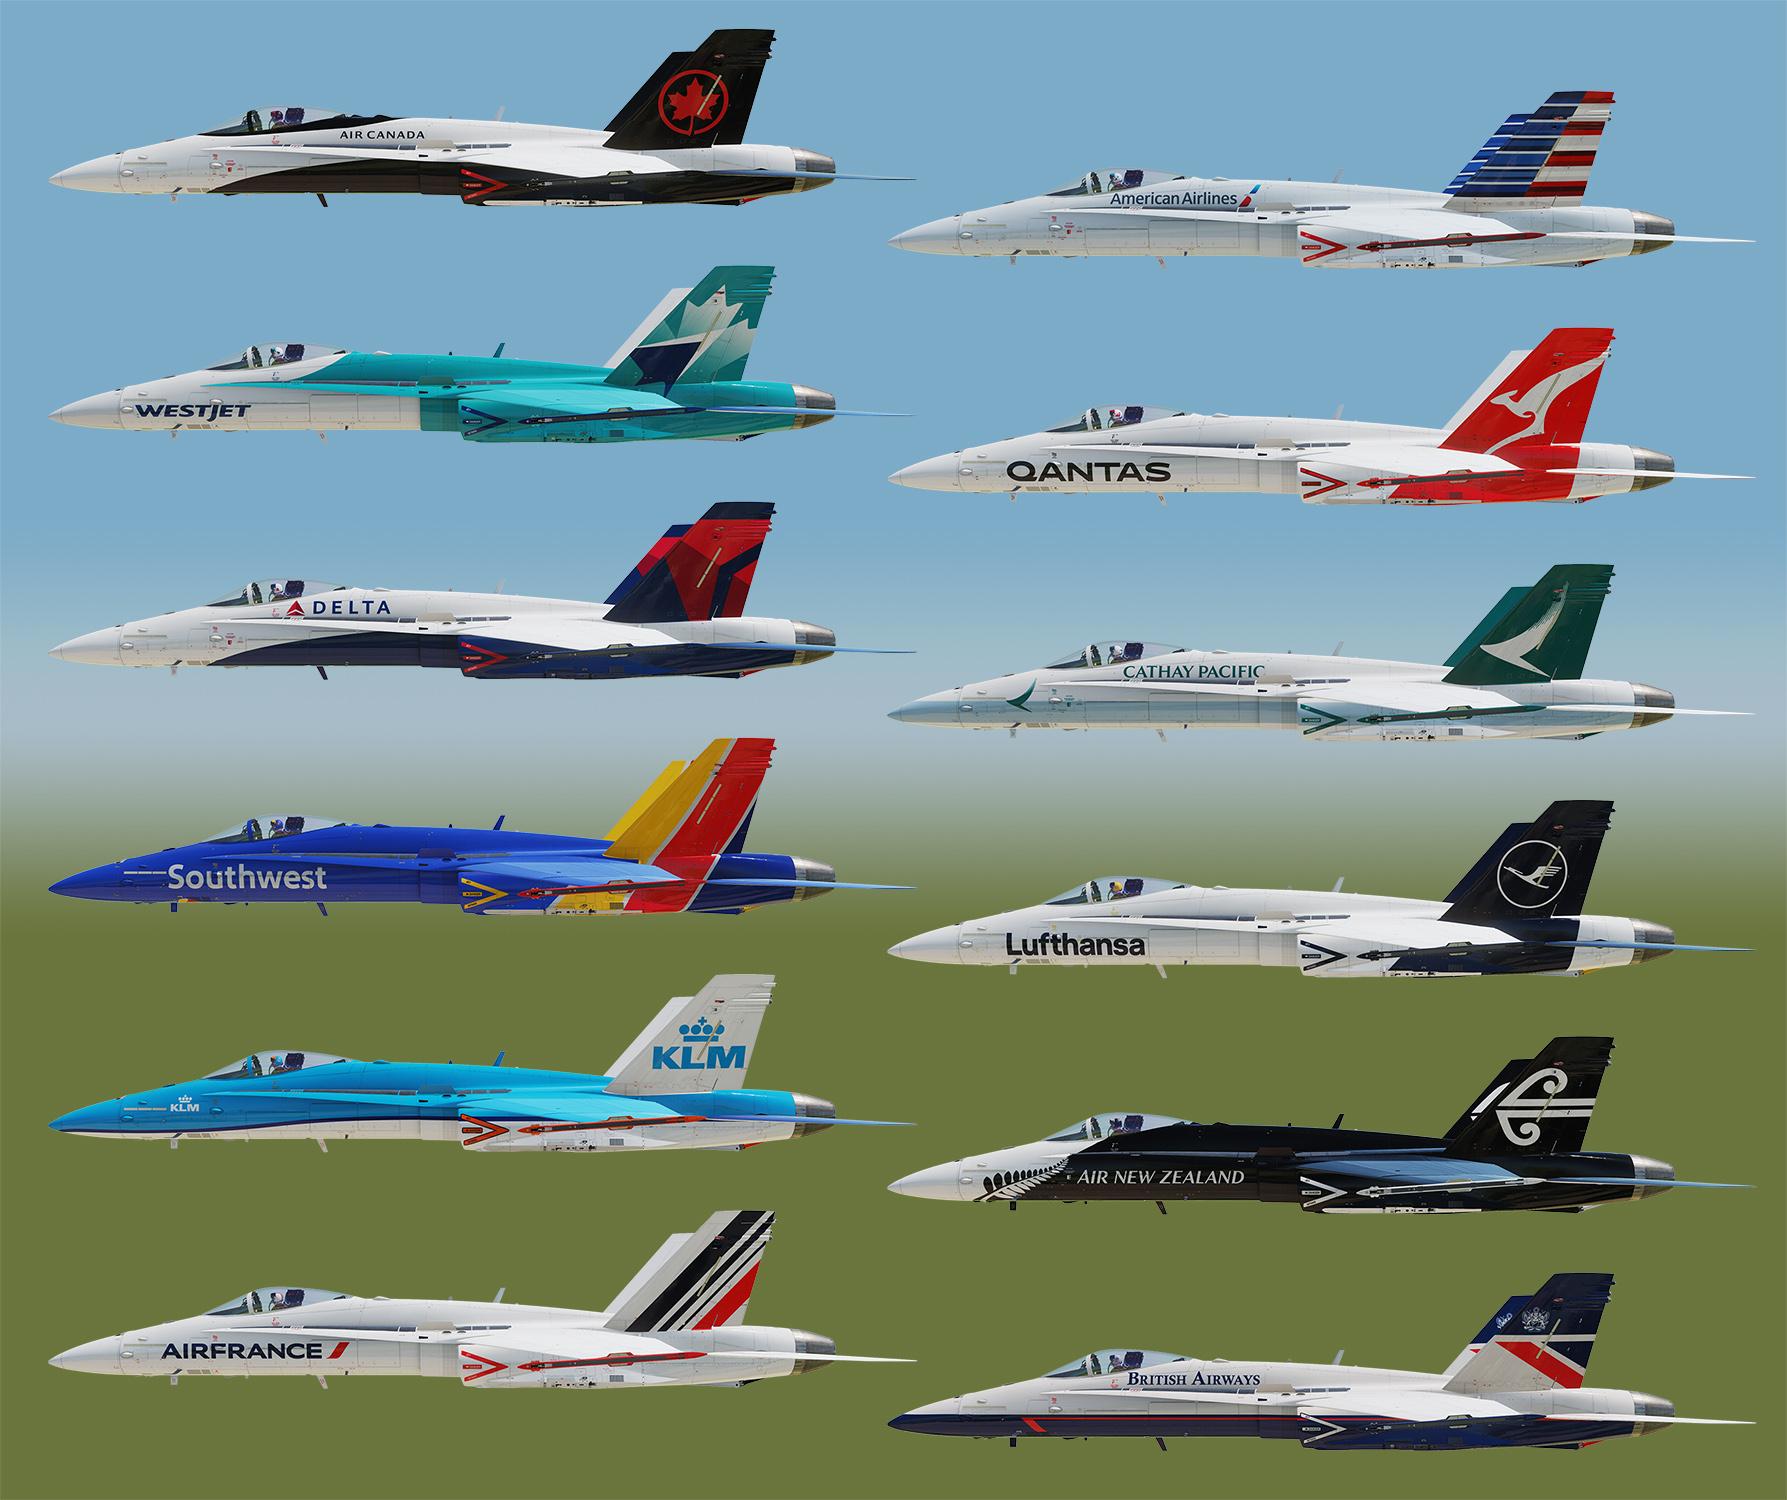 Airline Livery Master Collection F-18